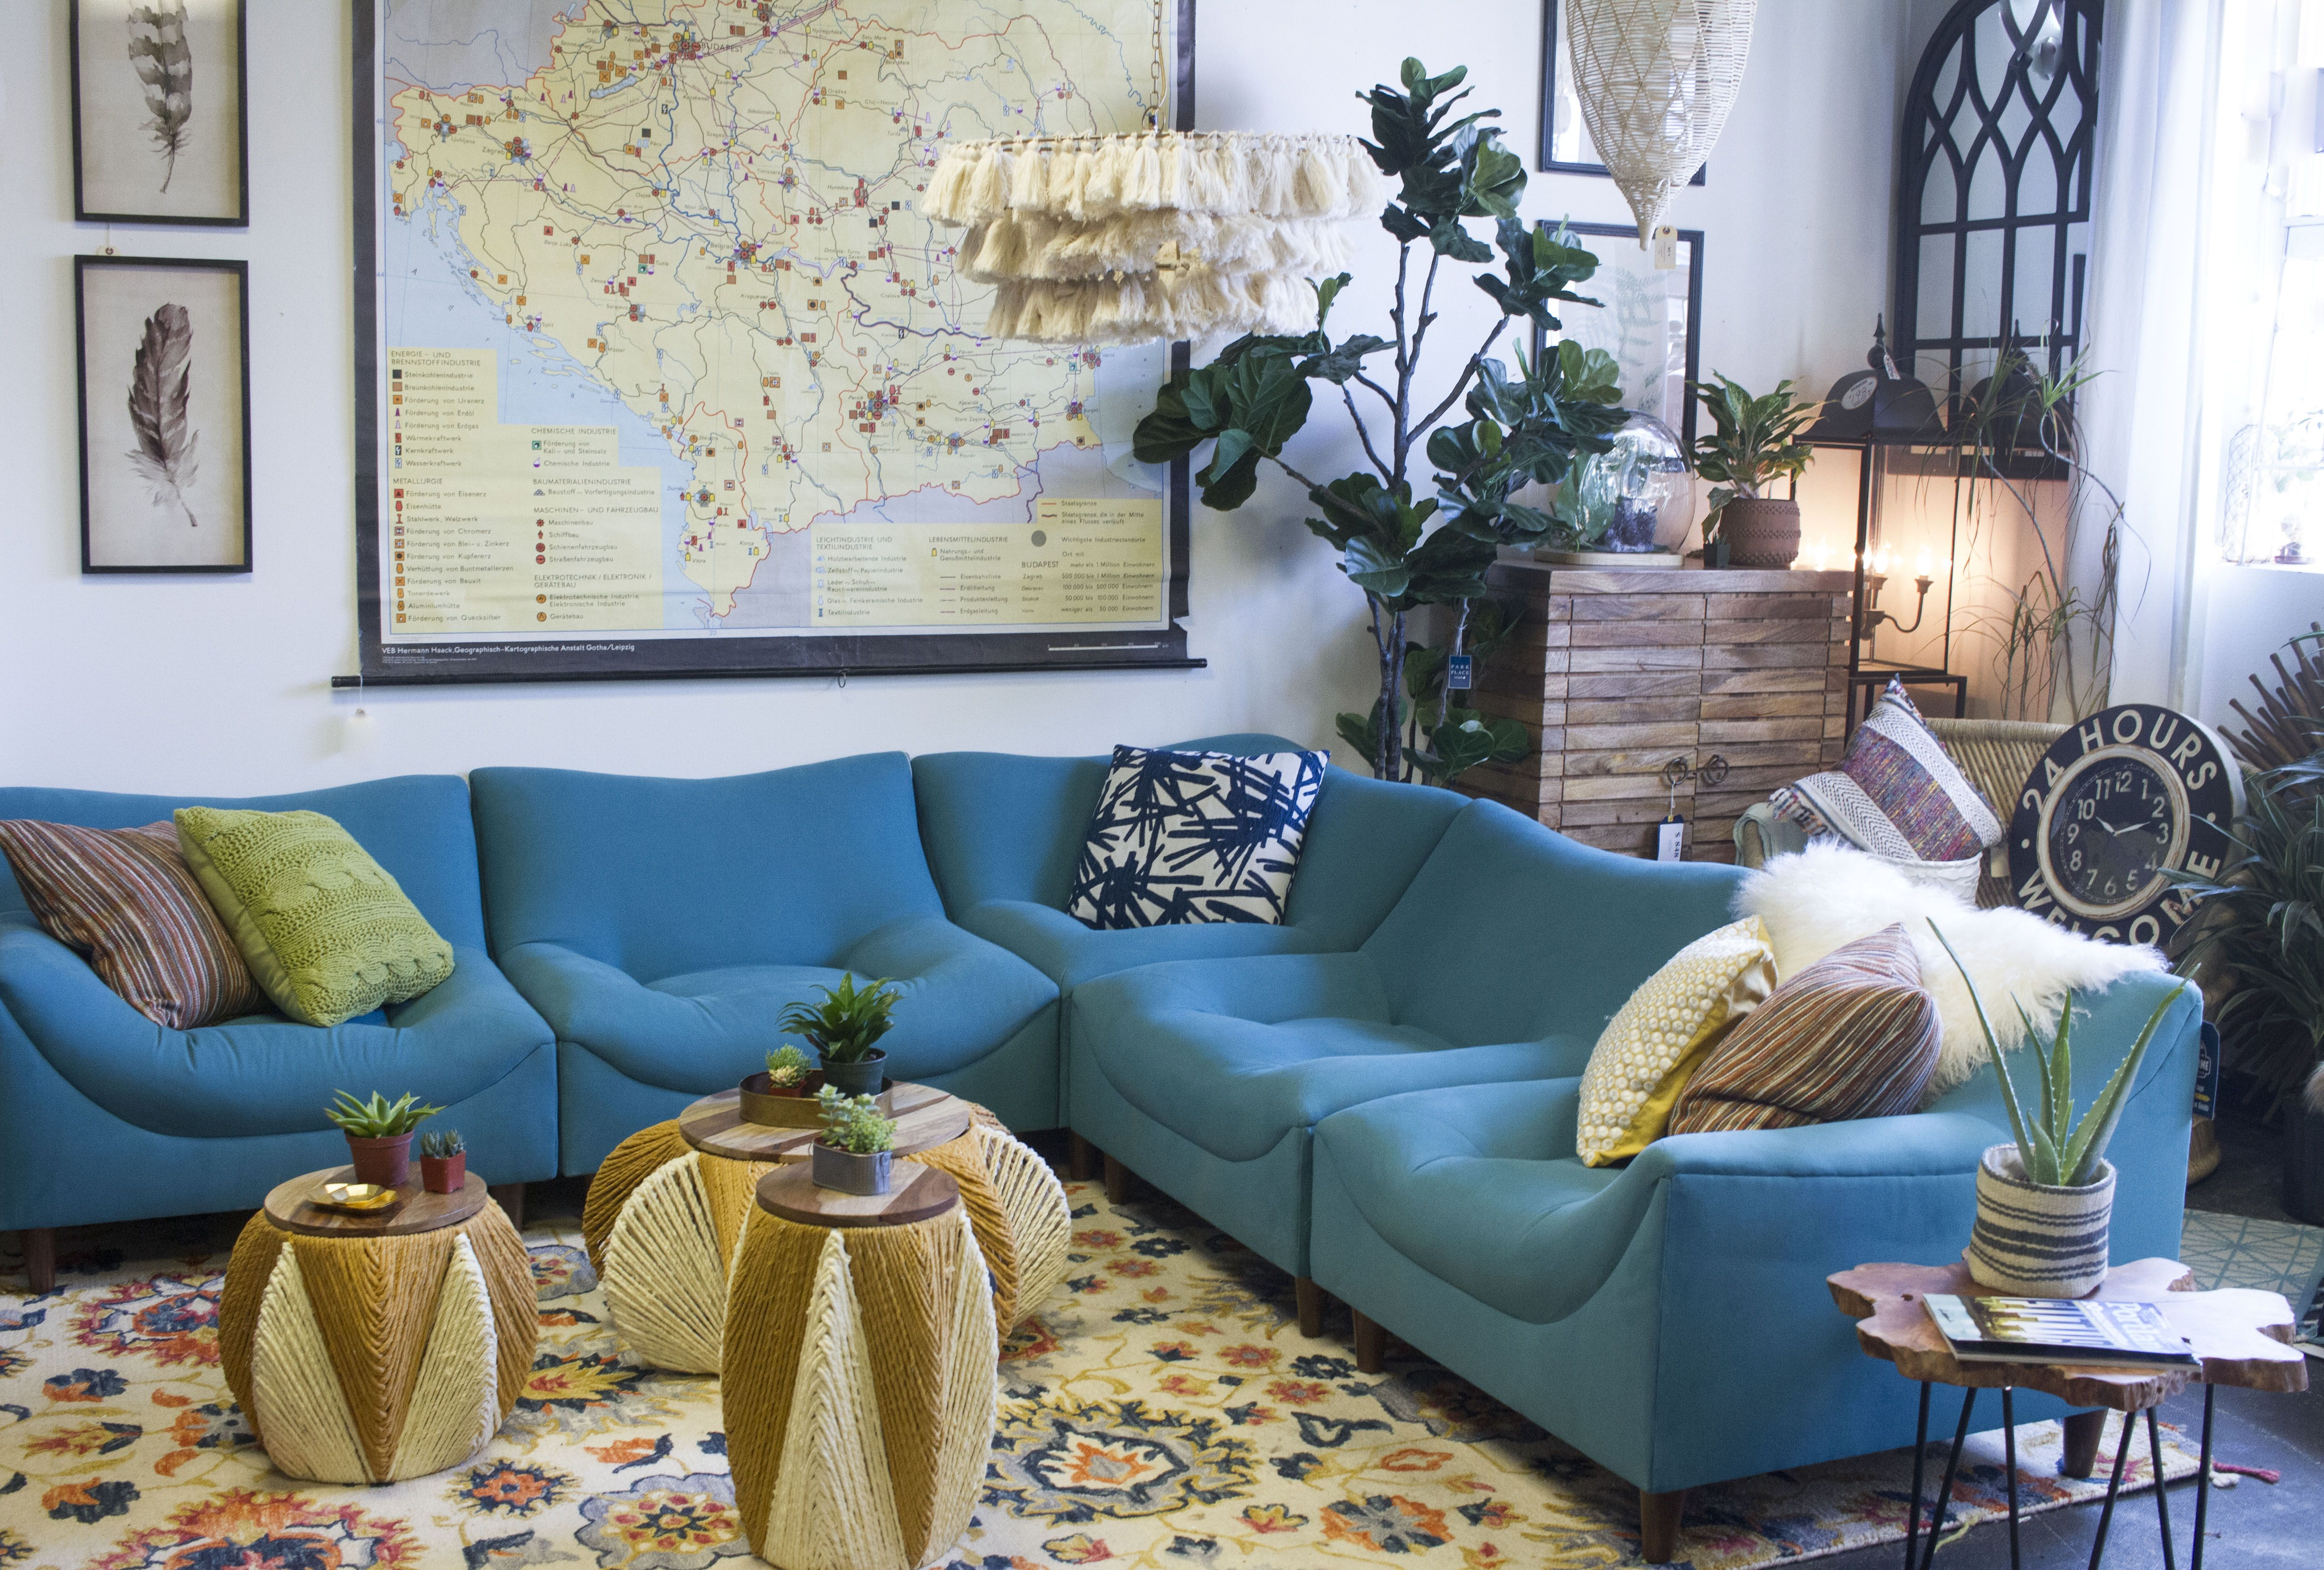 The Jungalow Room At City Home In Portland Oregon With All Things Bohemian Plants Bohemian Furniture Eclectic Decor Furniture Decor